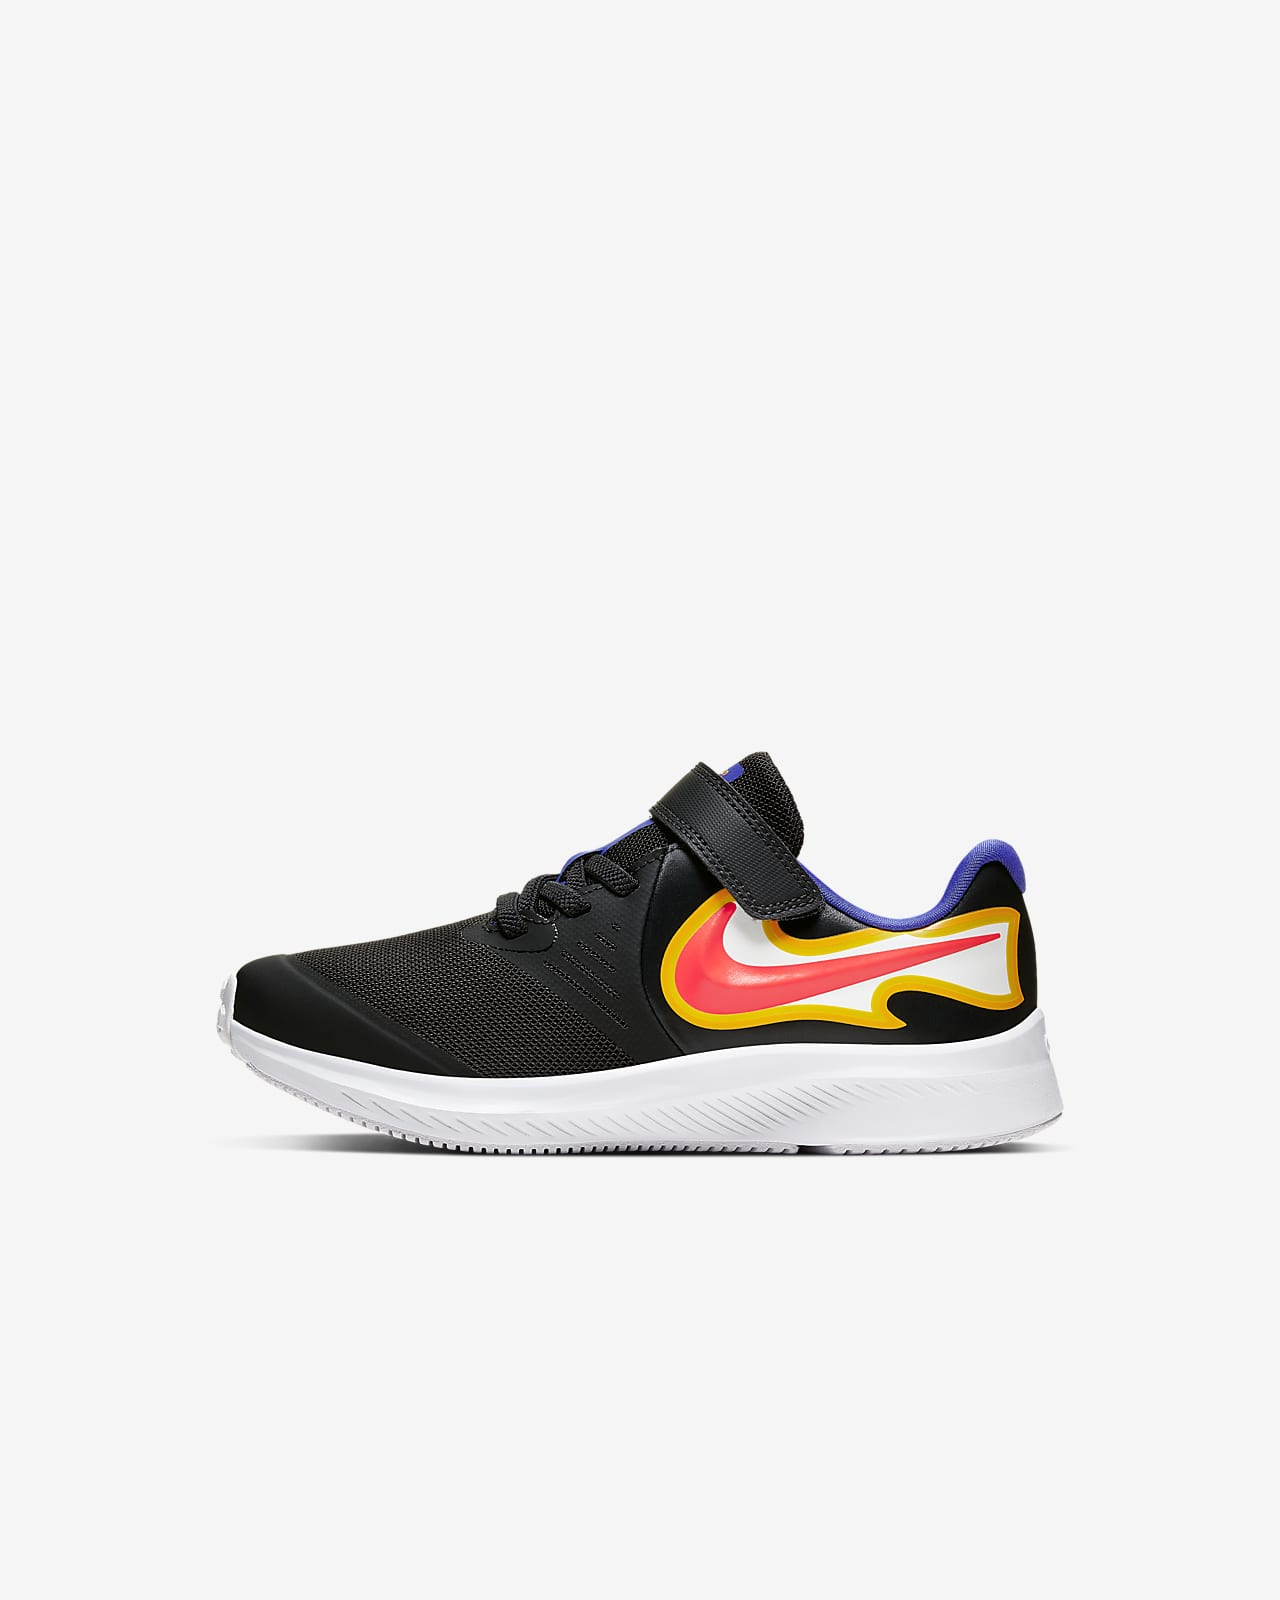 Nike Star Runner 2 Fire (PSV) 幼童运动童鞋